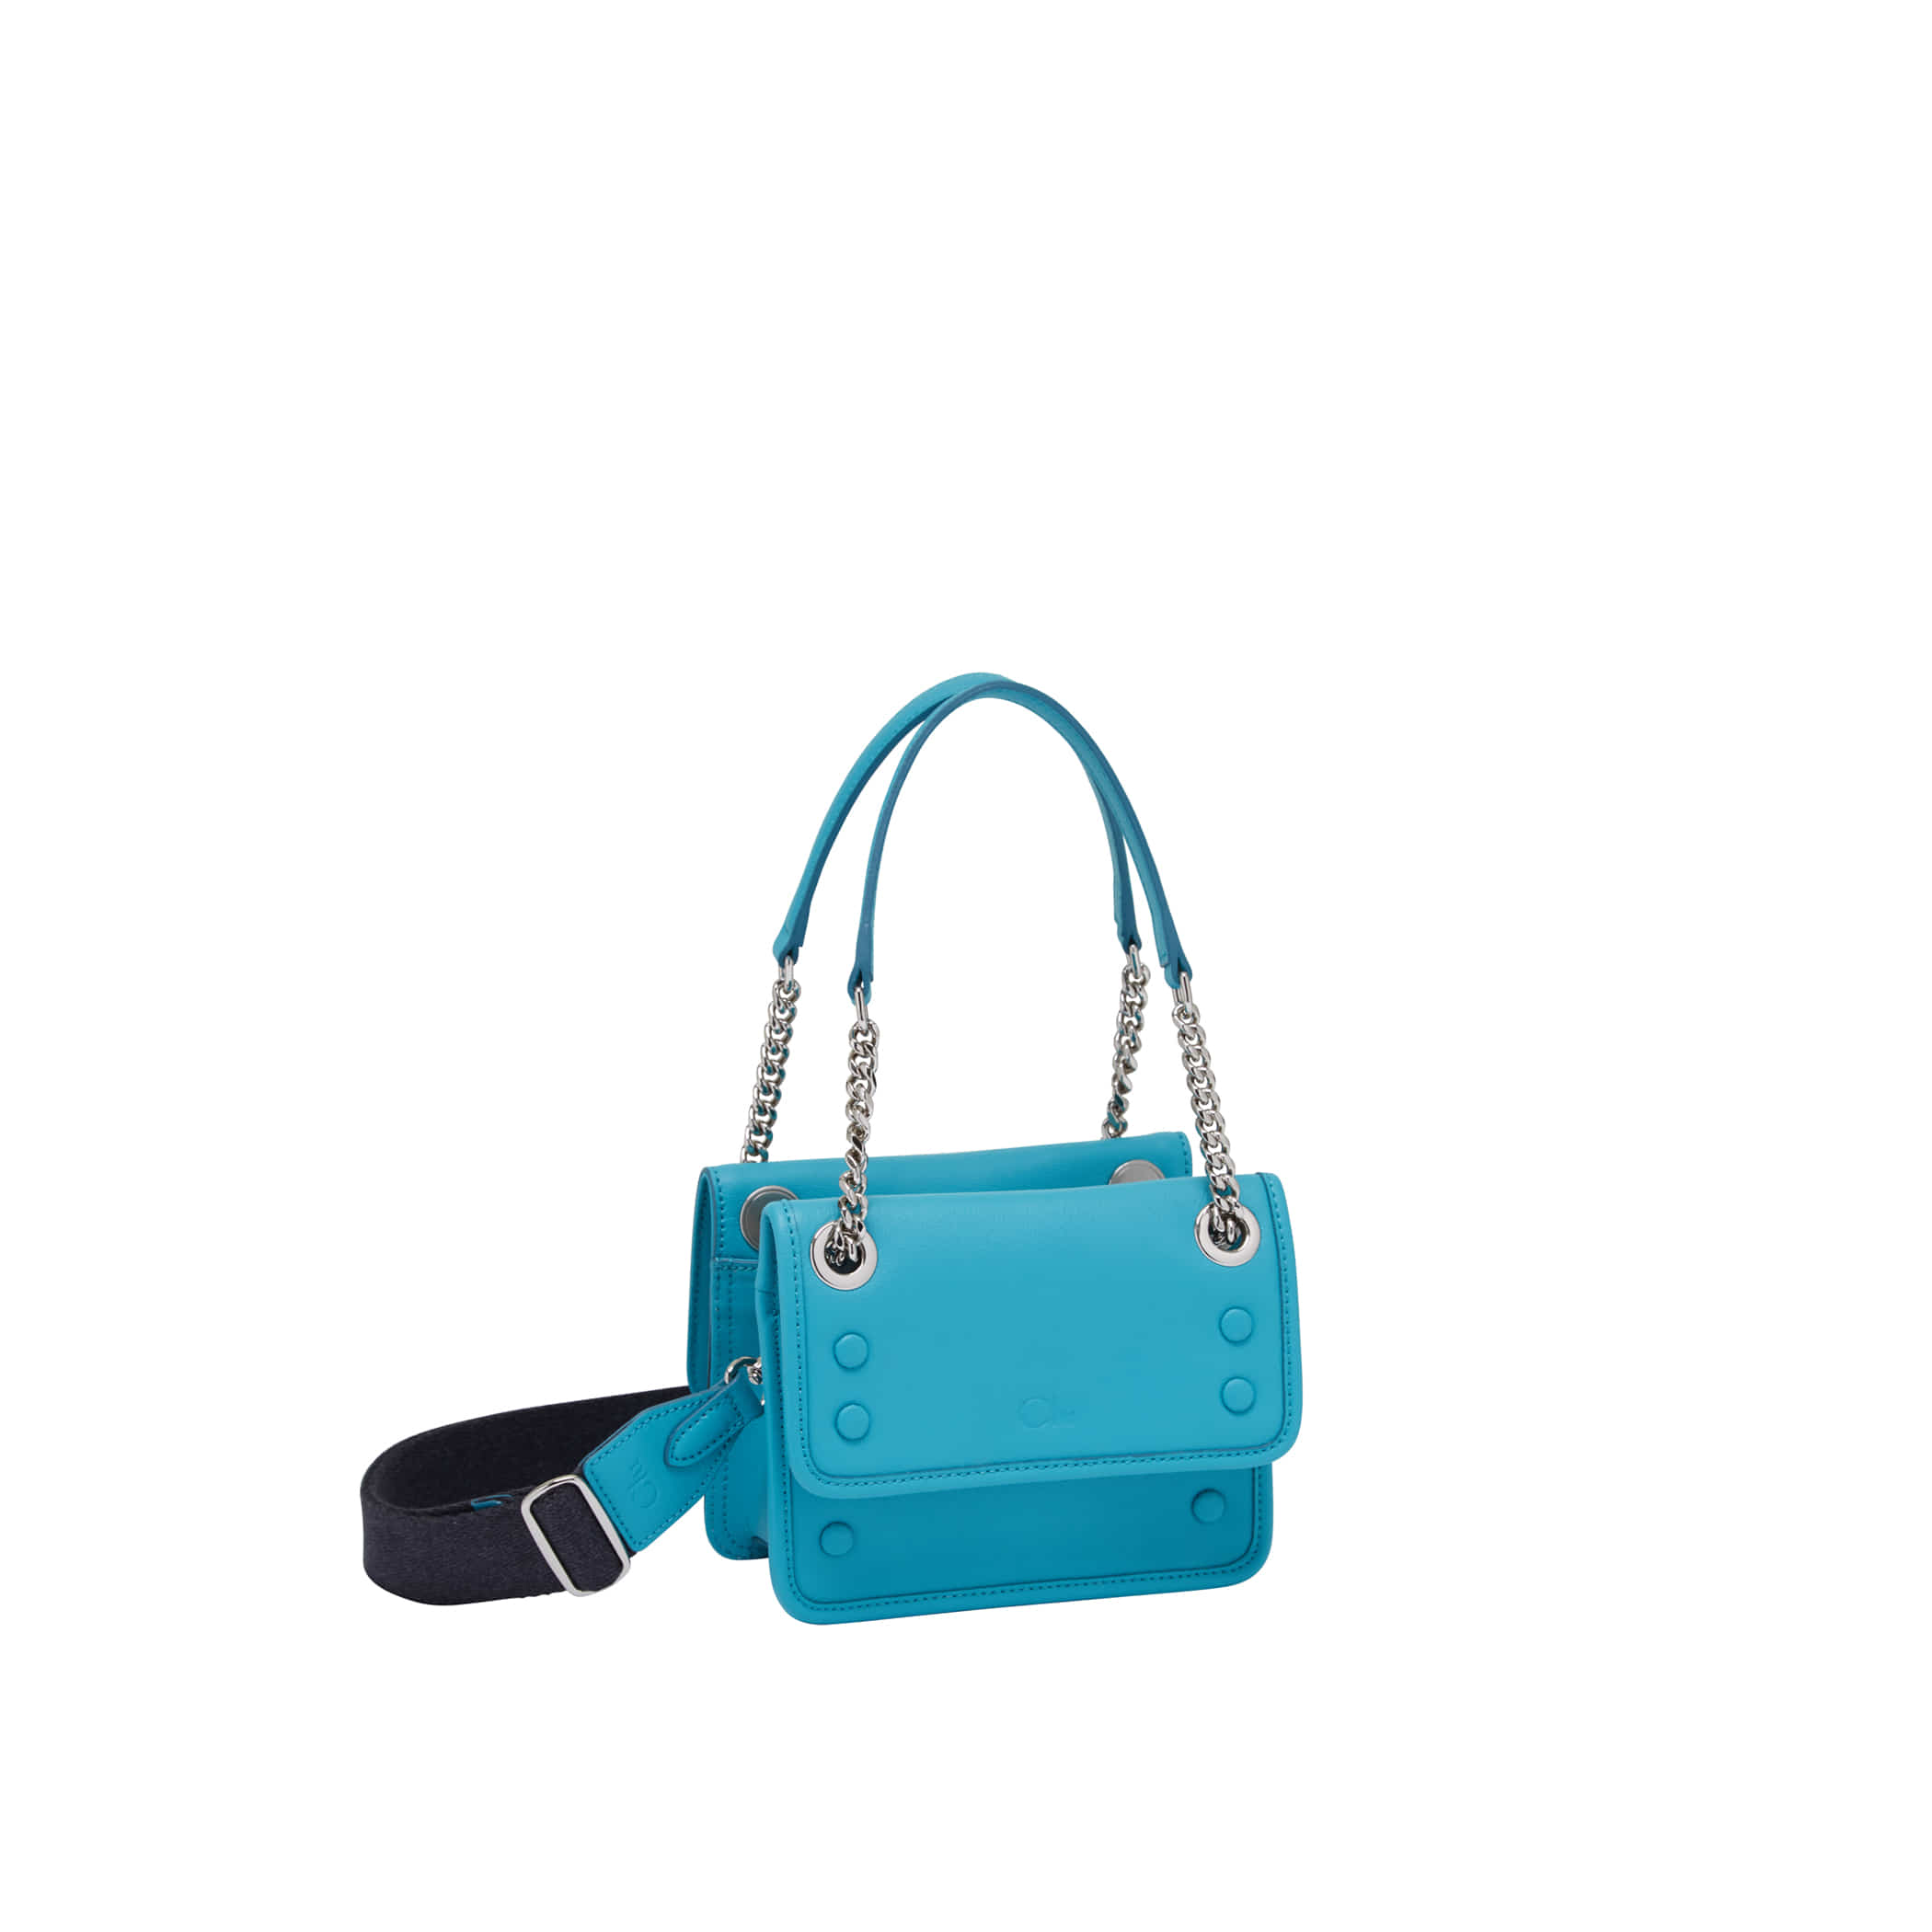 Clu_JAXSTA MINI CROSS BAG IN MINT